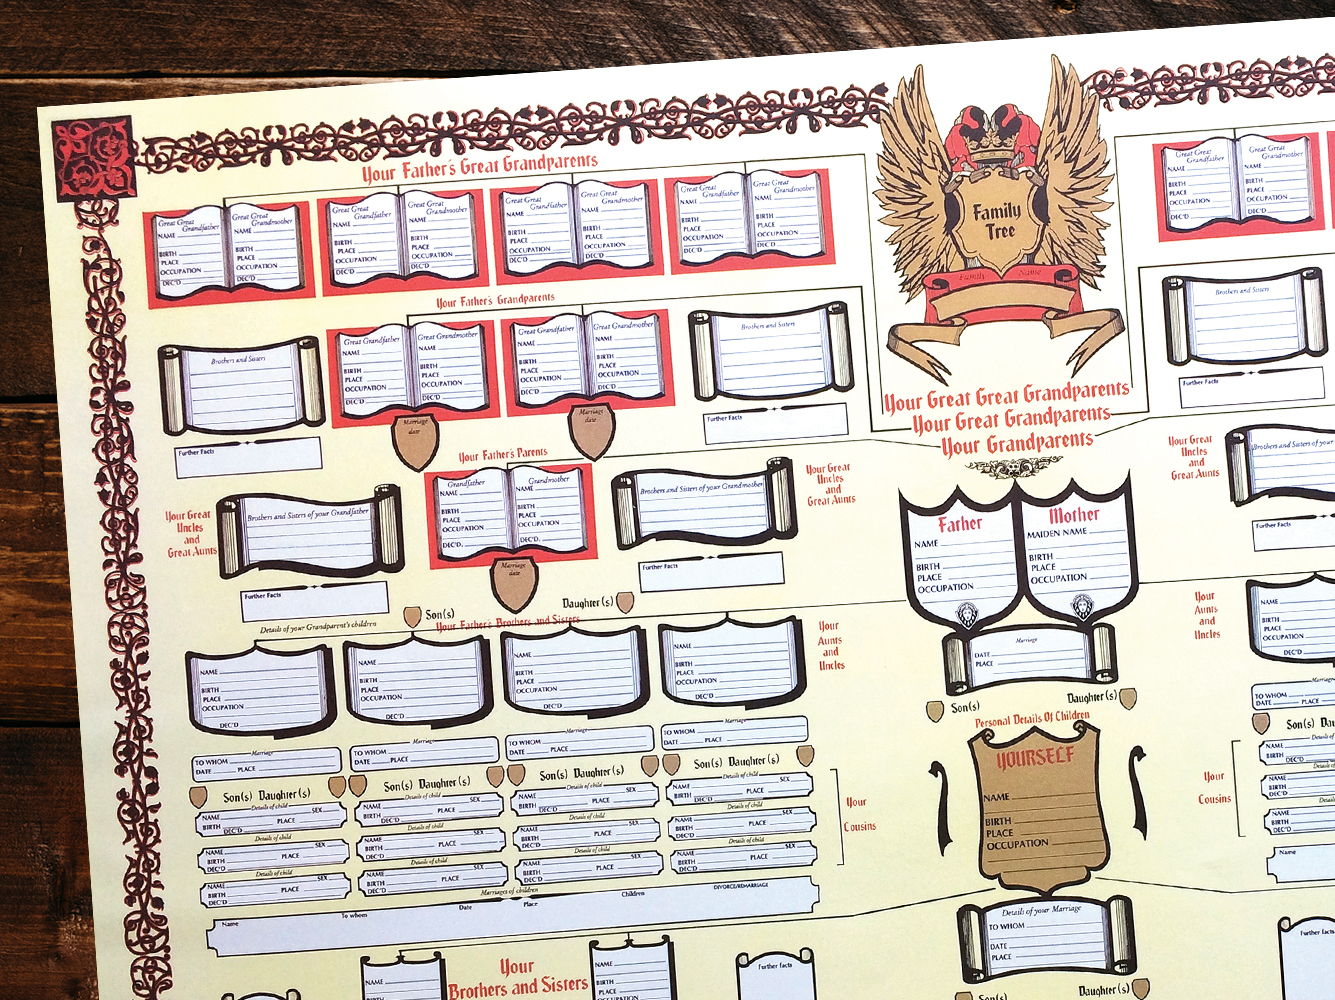 Family Tree Chart - Four generations of family to record